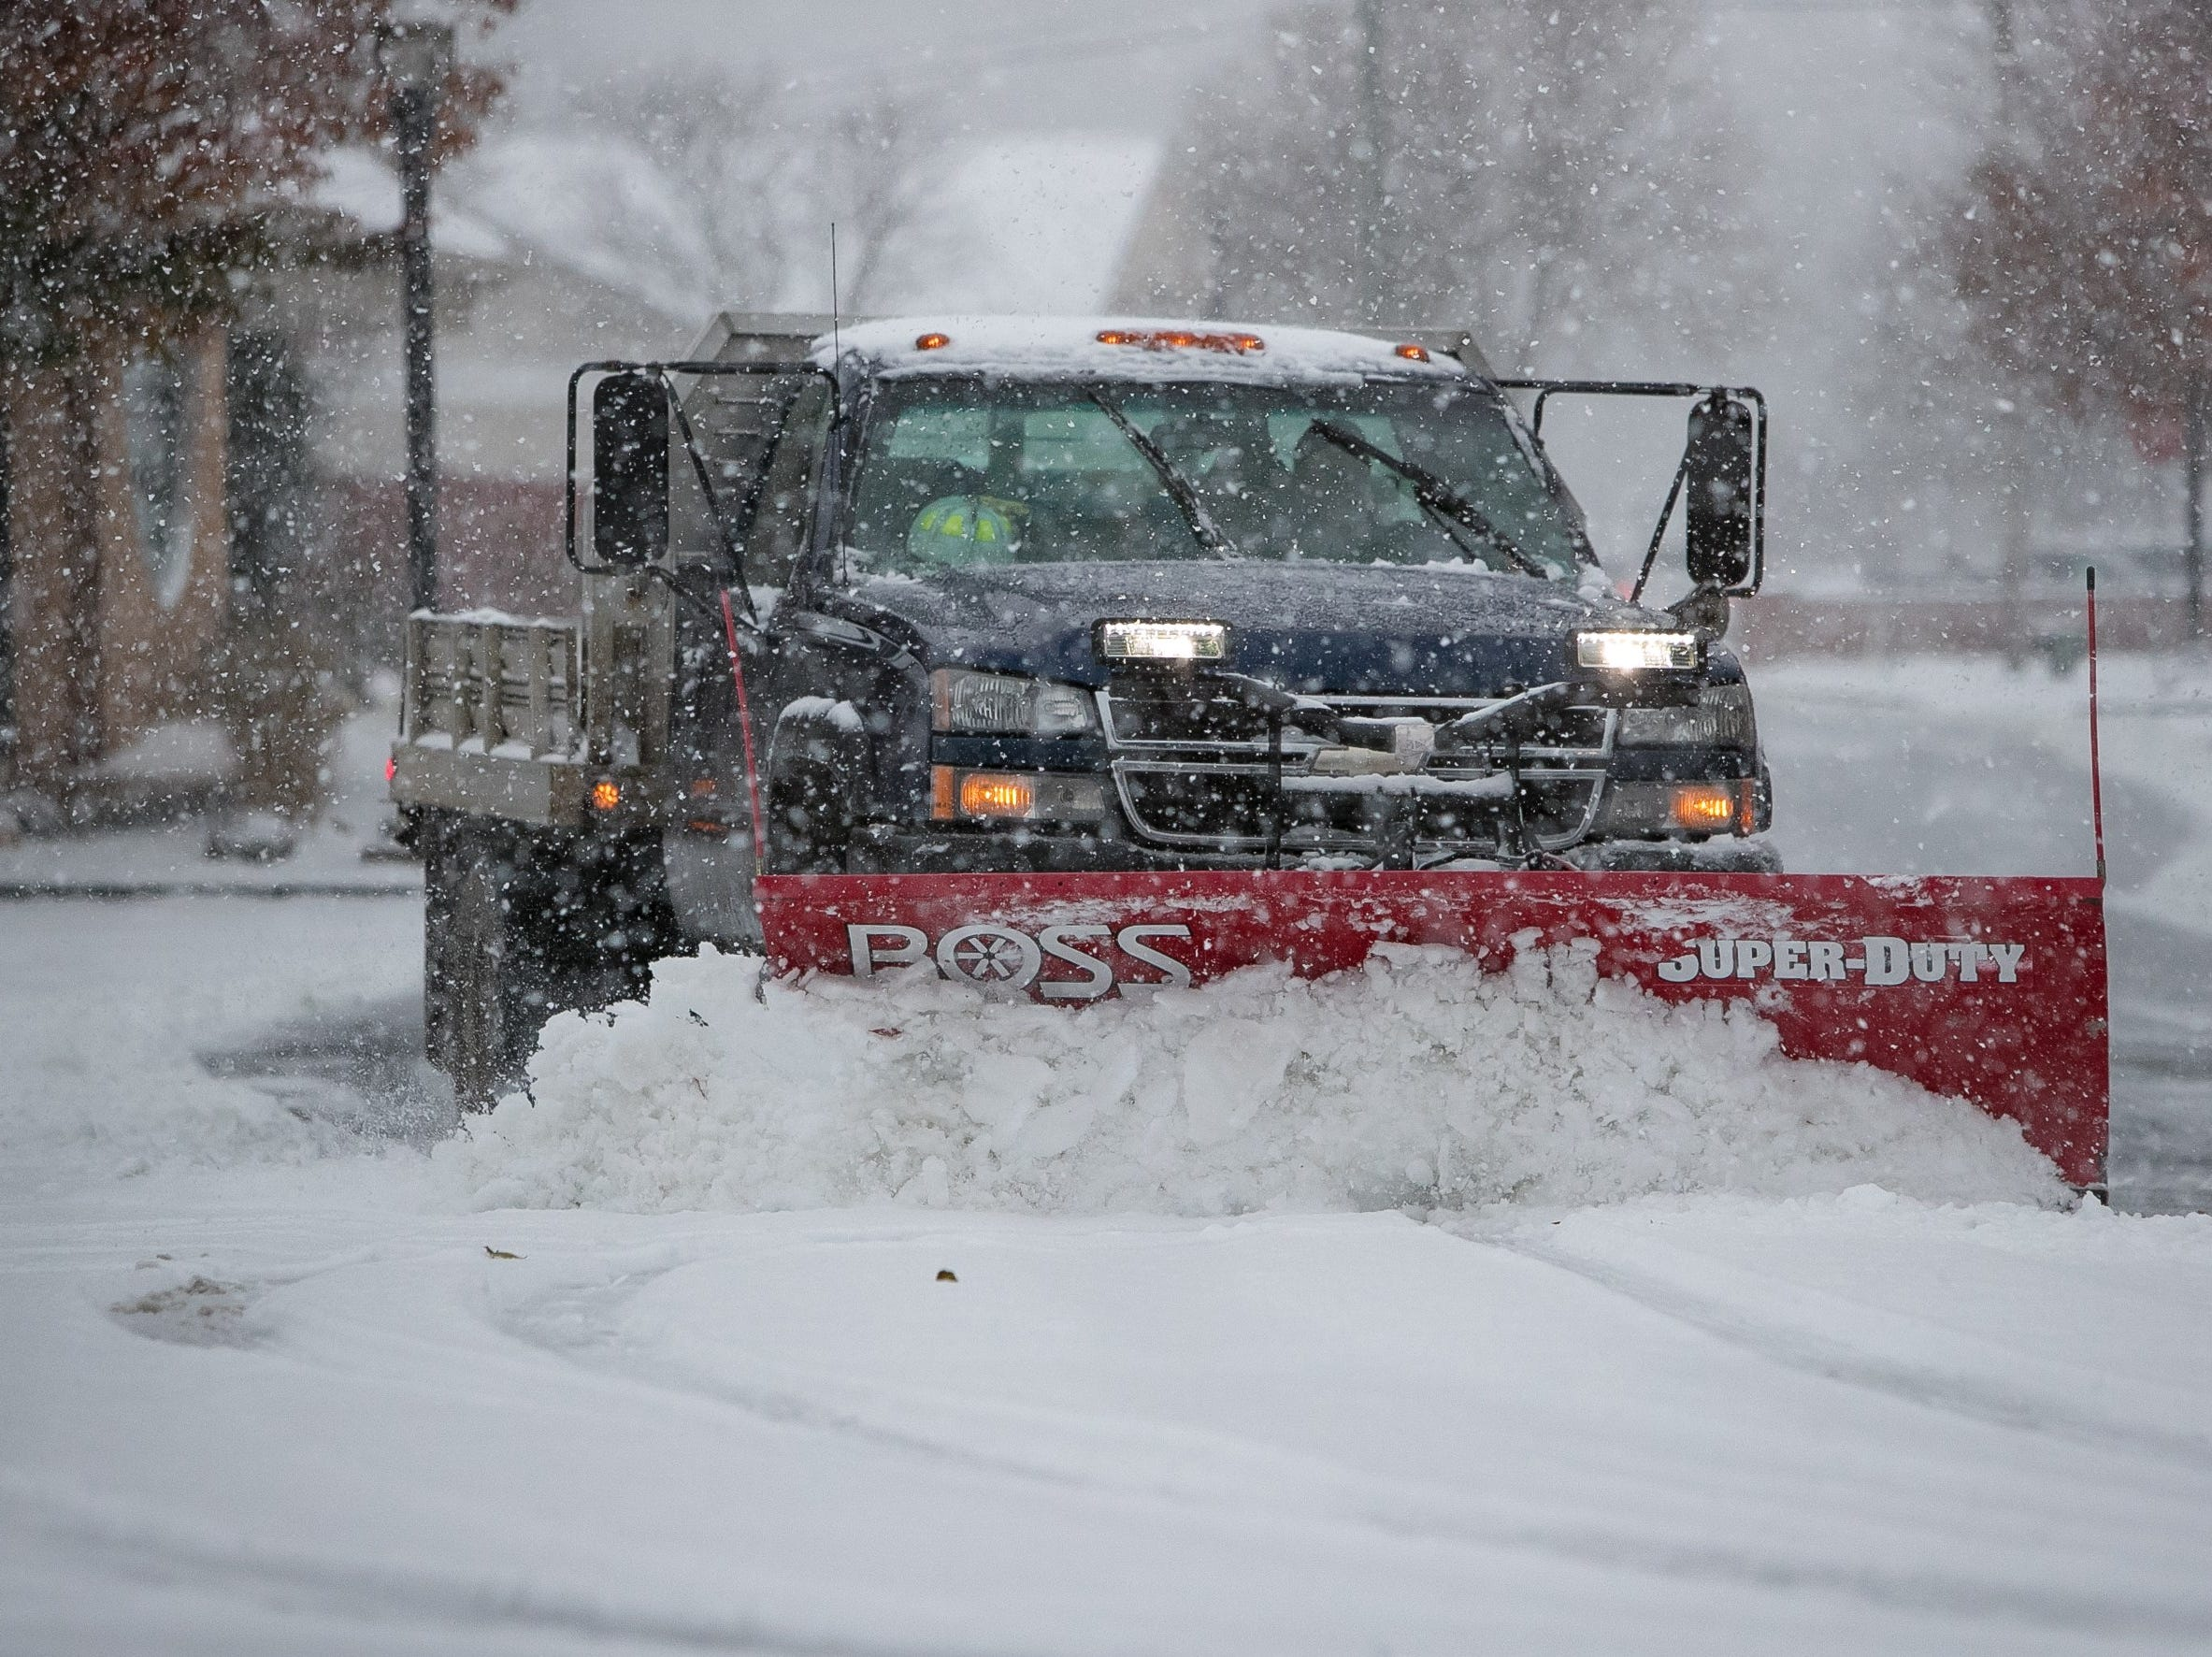 A snow truck clears snow in the parking lot of the Hockessin Fire Hall.